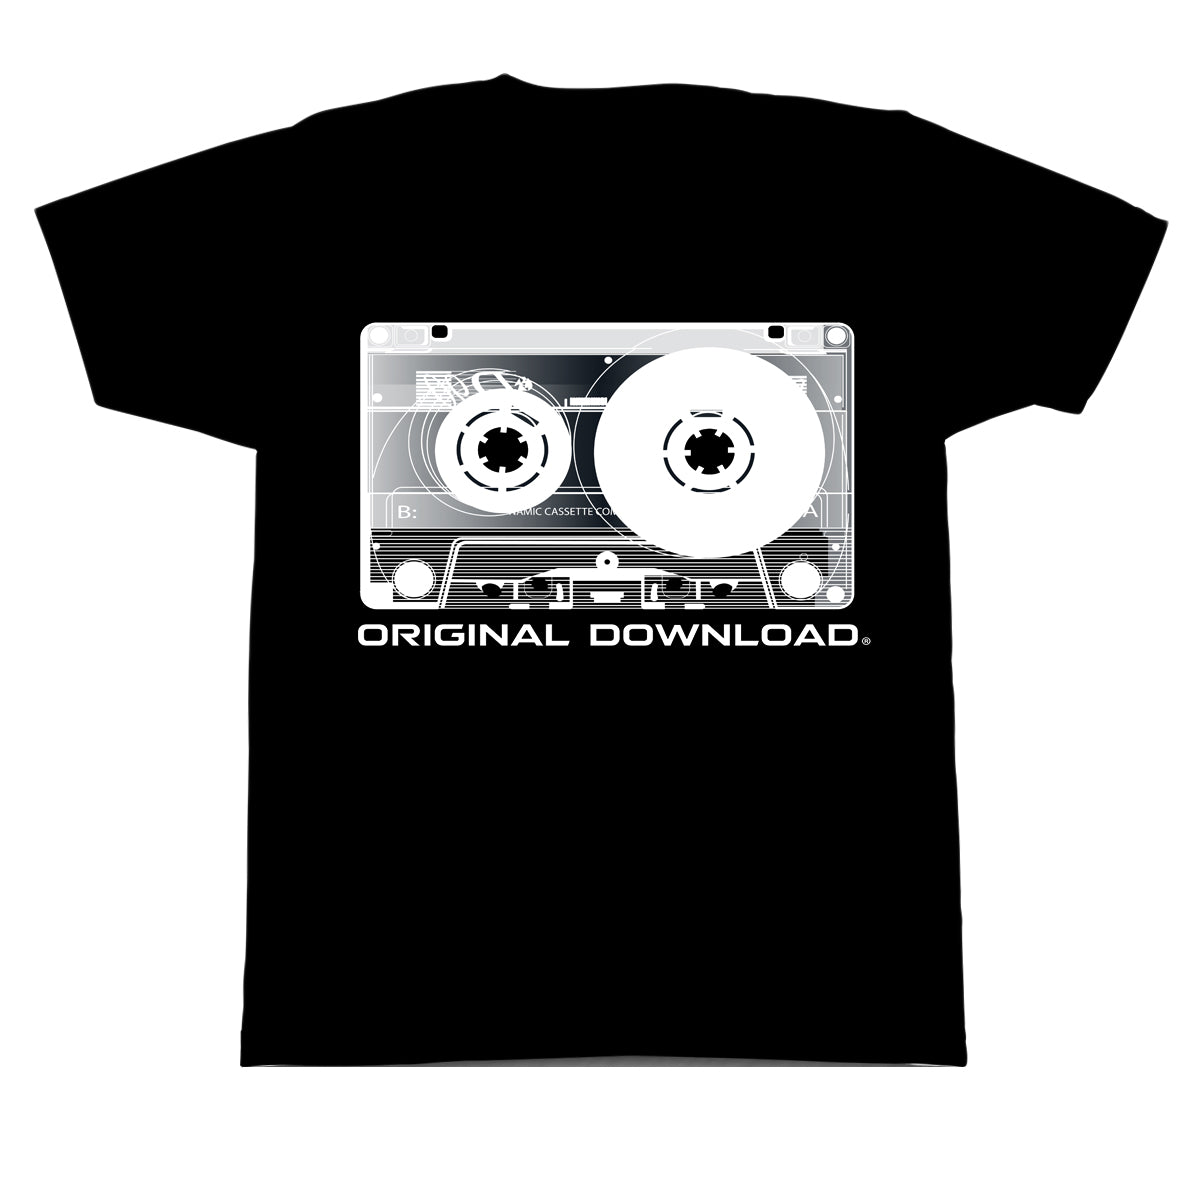 Original Download Retro T-Shirt